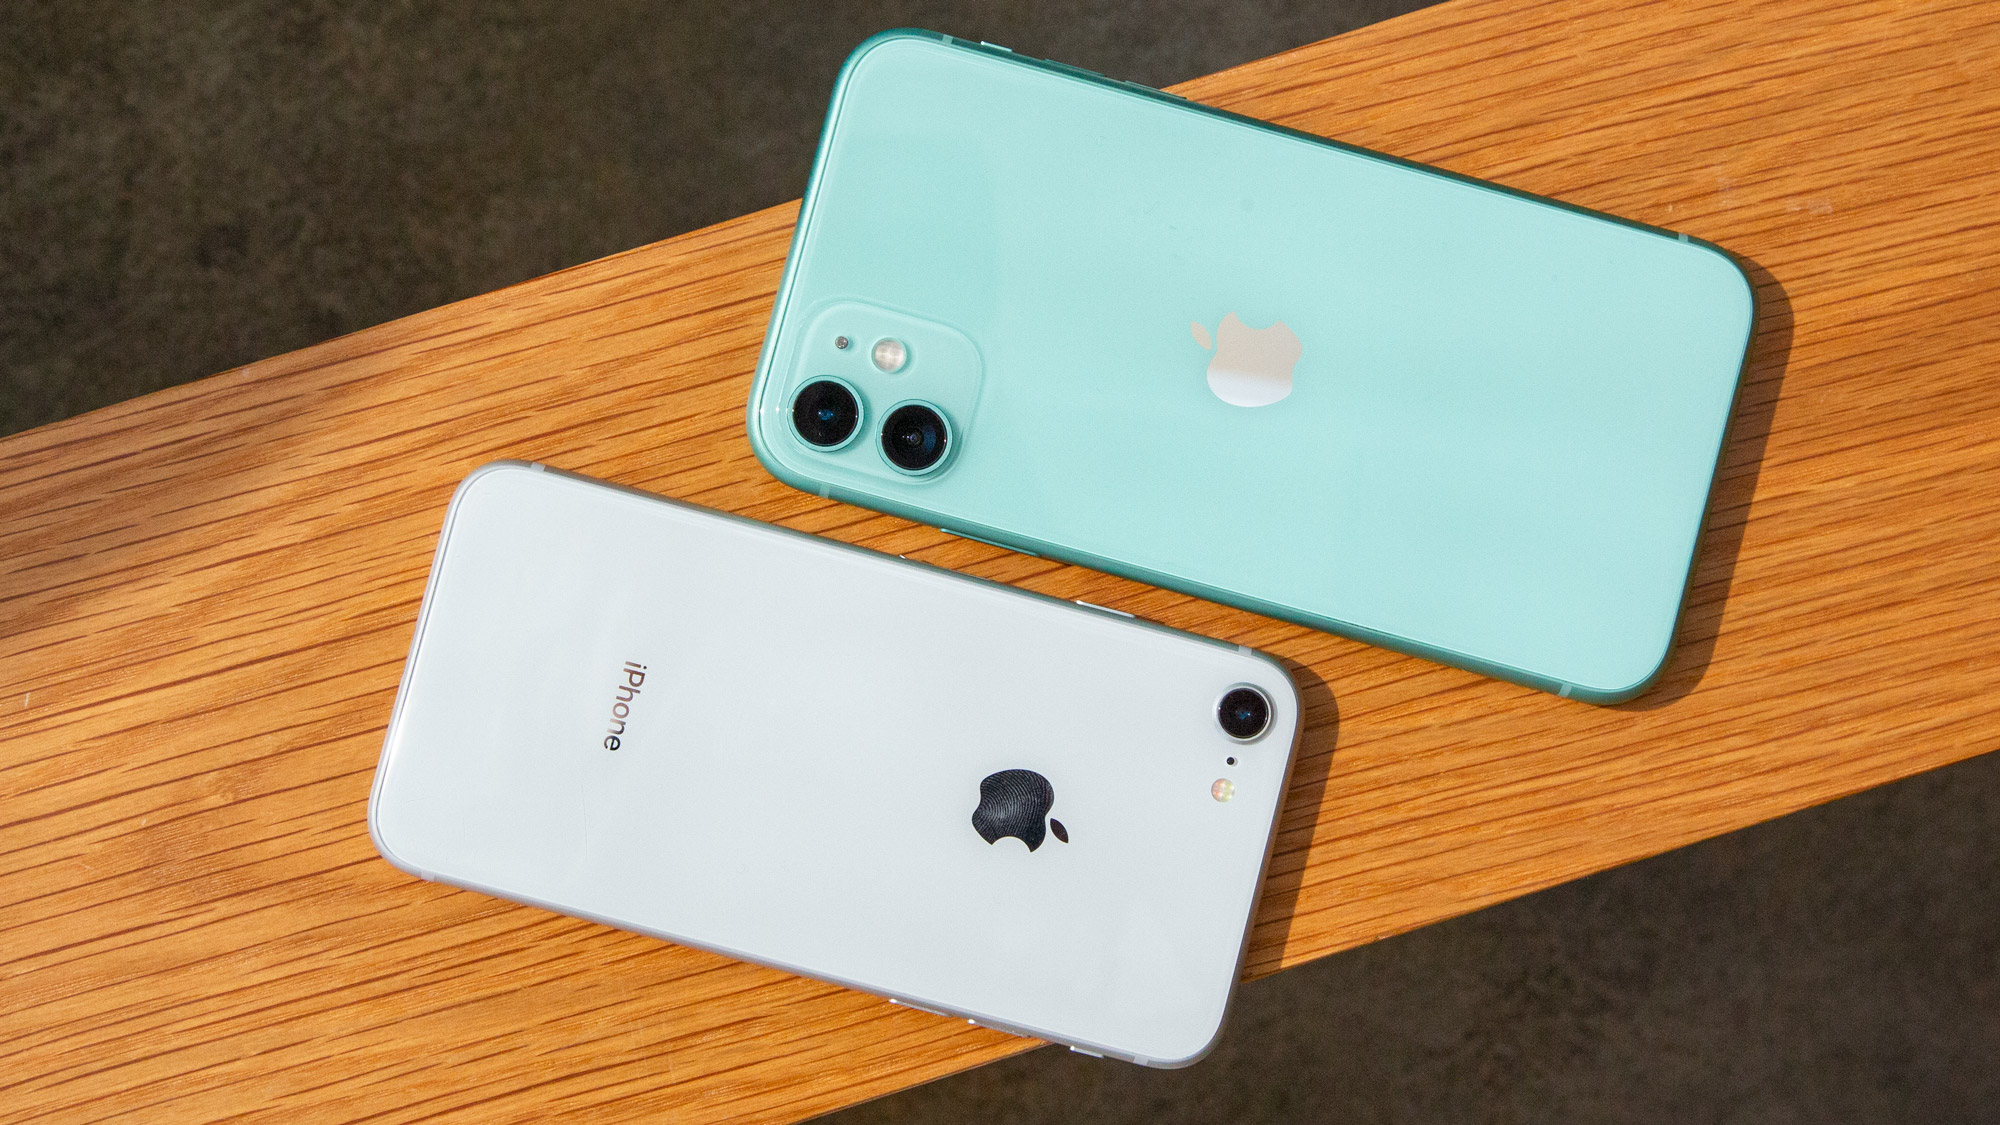 iPhone 11 vs. iPhone 8: Should You Upgrade? | Tom's Guide